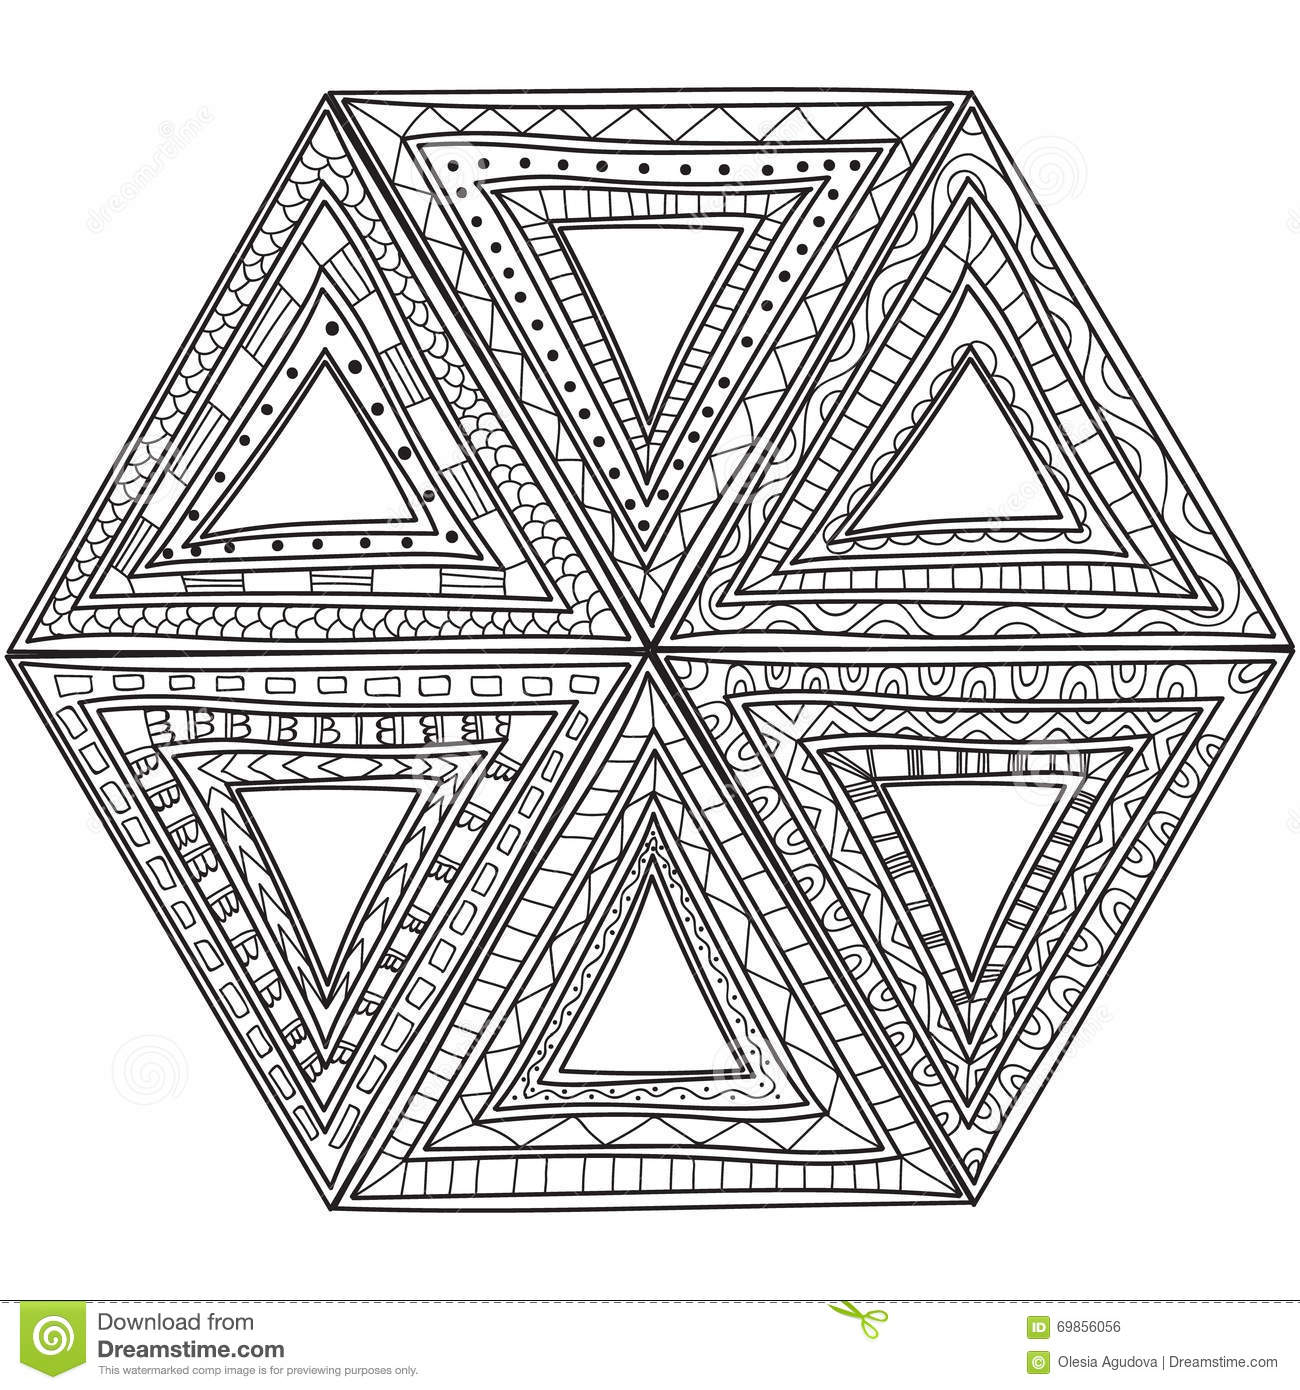 Black And White Pattern Of Triangles. Coloring Pages For Adults ...